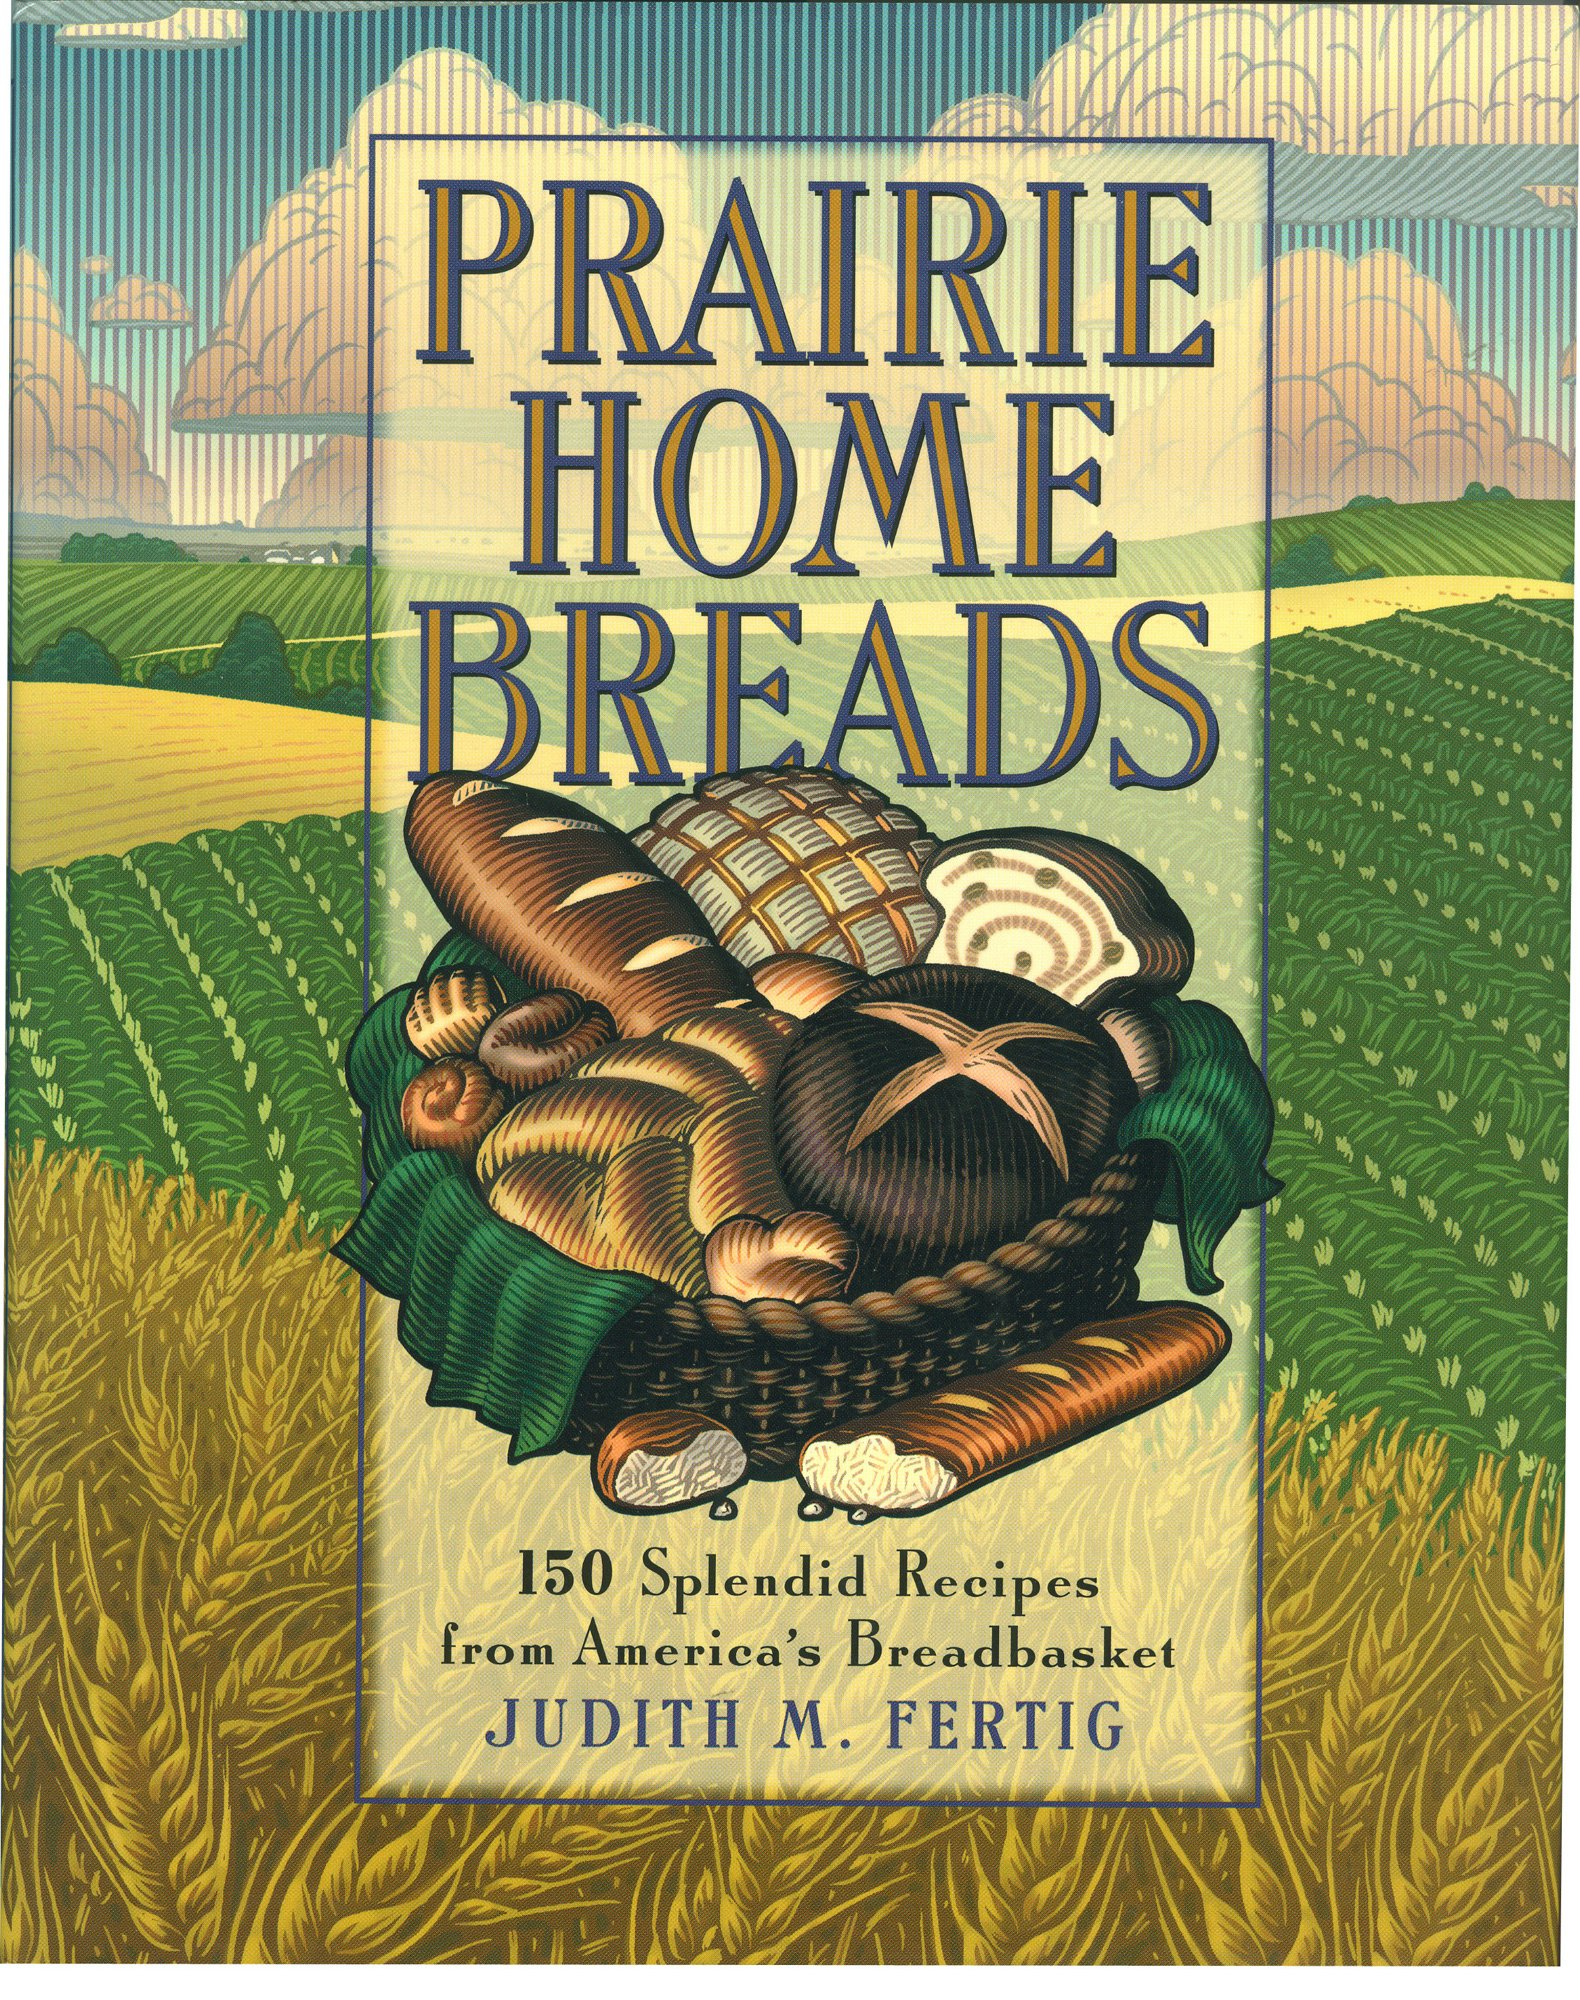 Download Prairie Home Breads: 150 Splendid Recipes from America's Breadbasket (Non) ebook